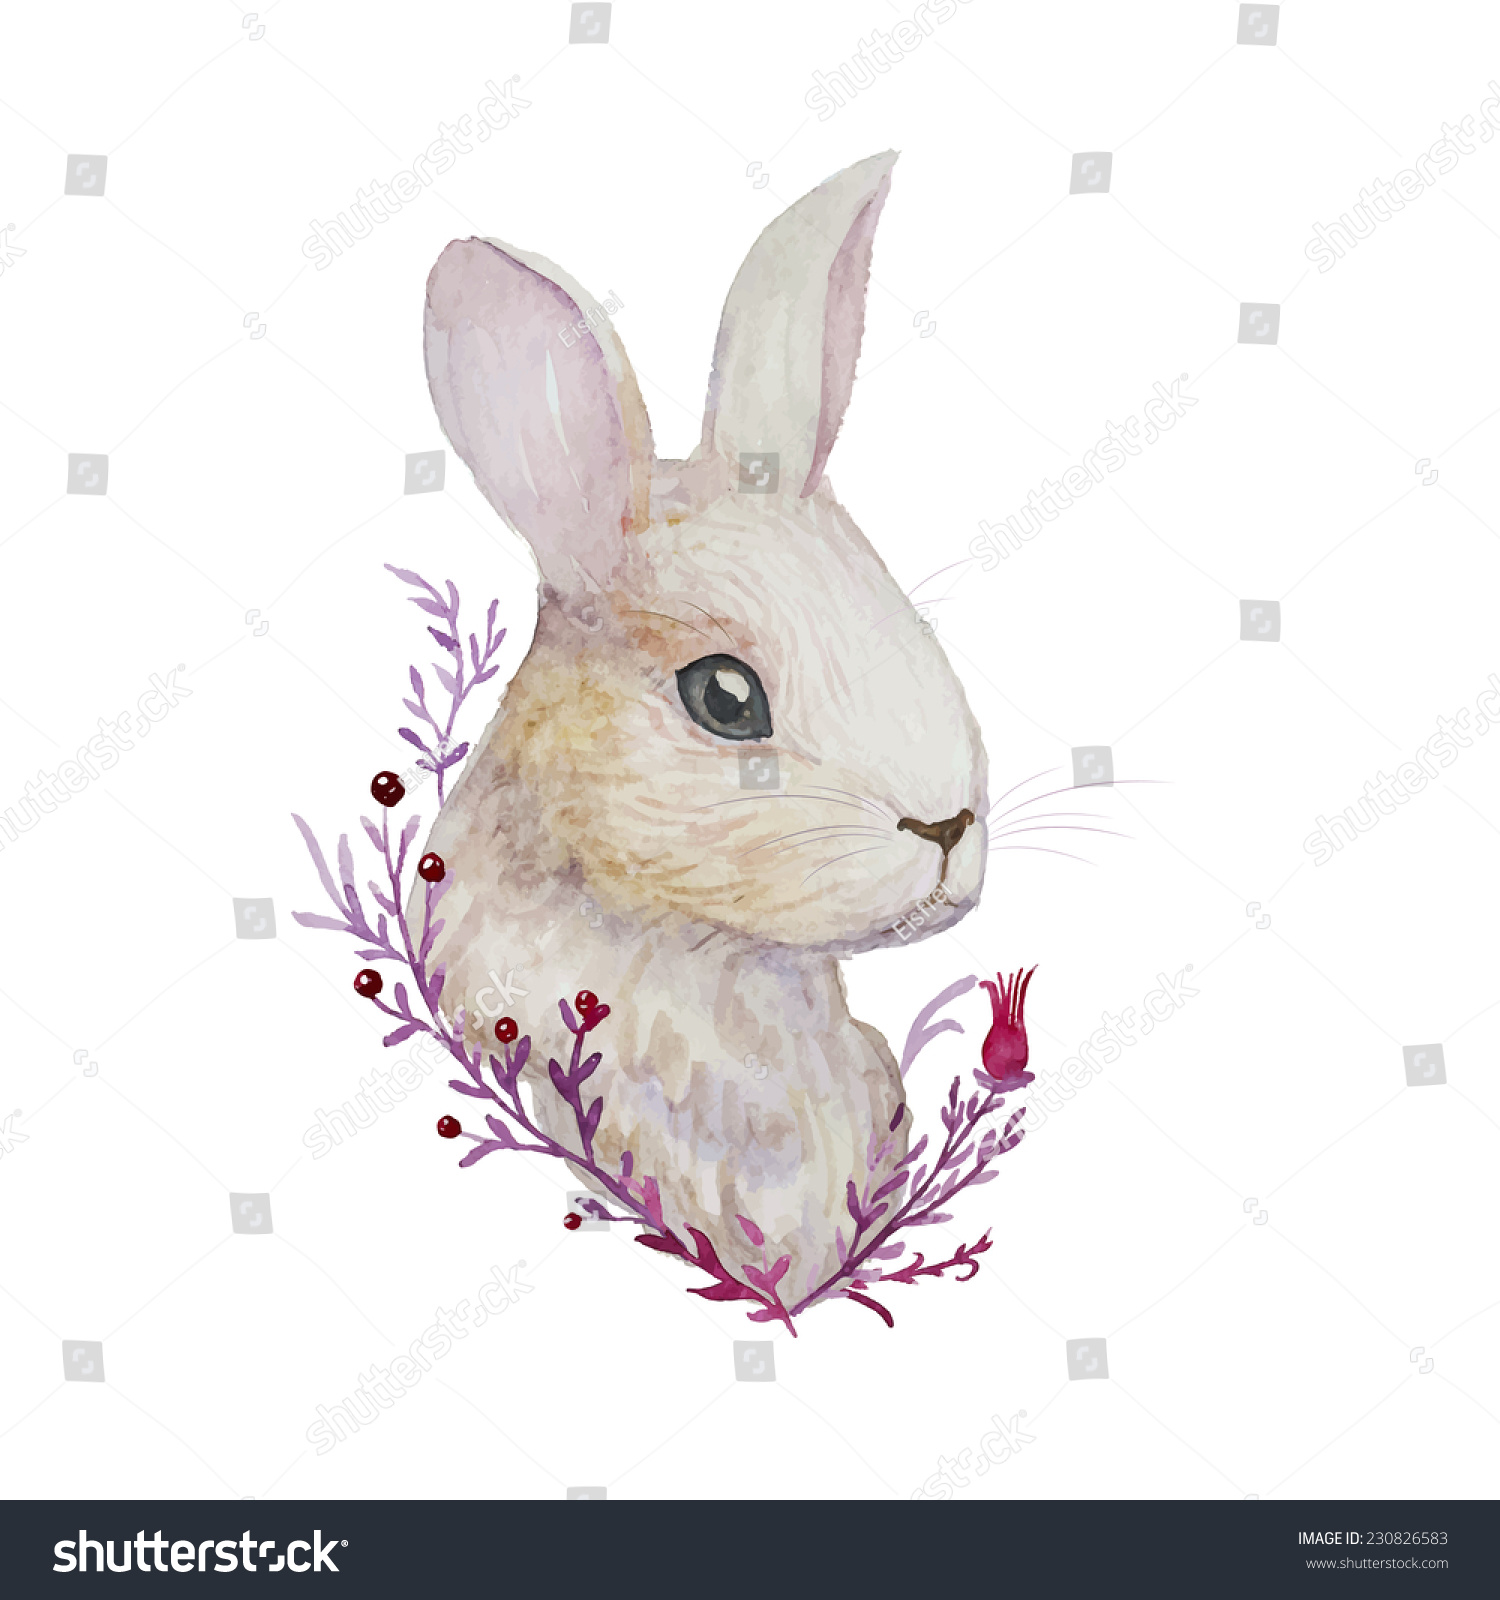 Hare illustration - photo#14